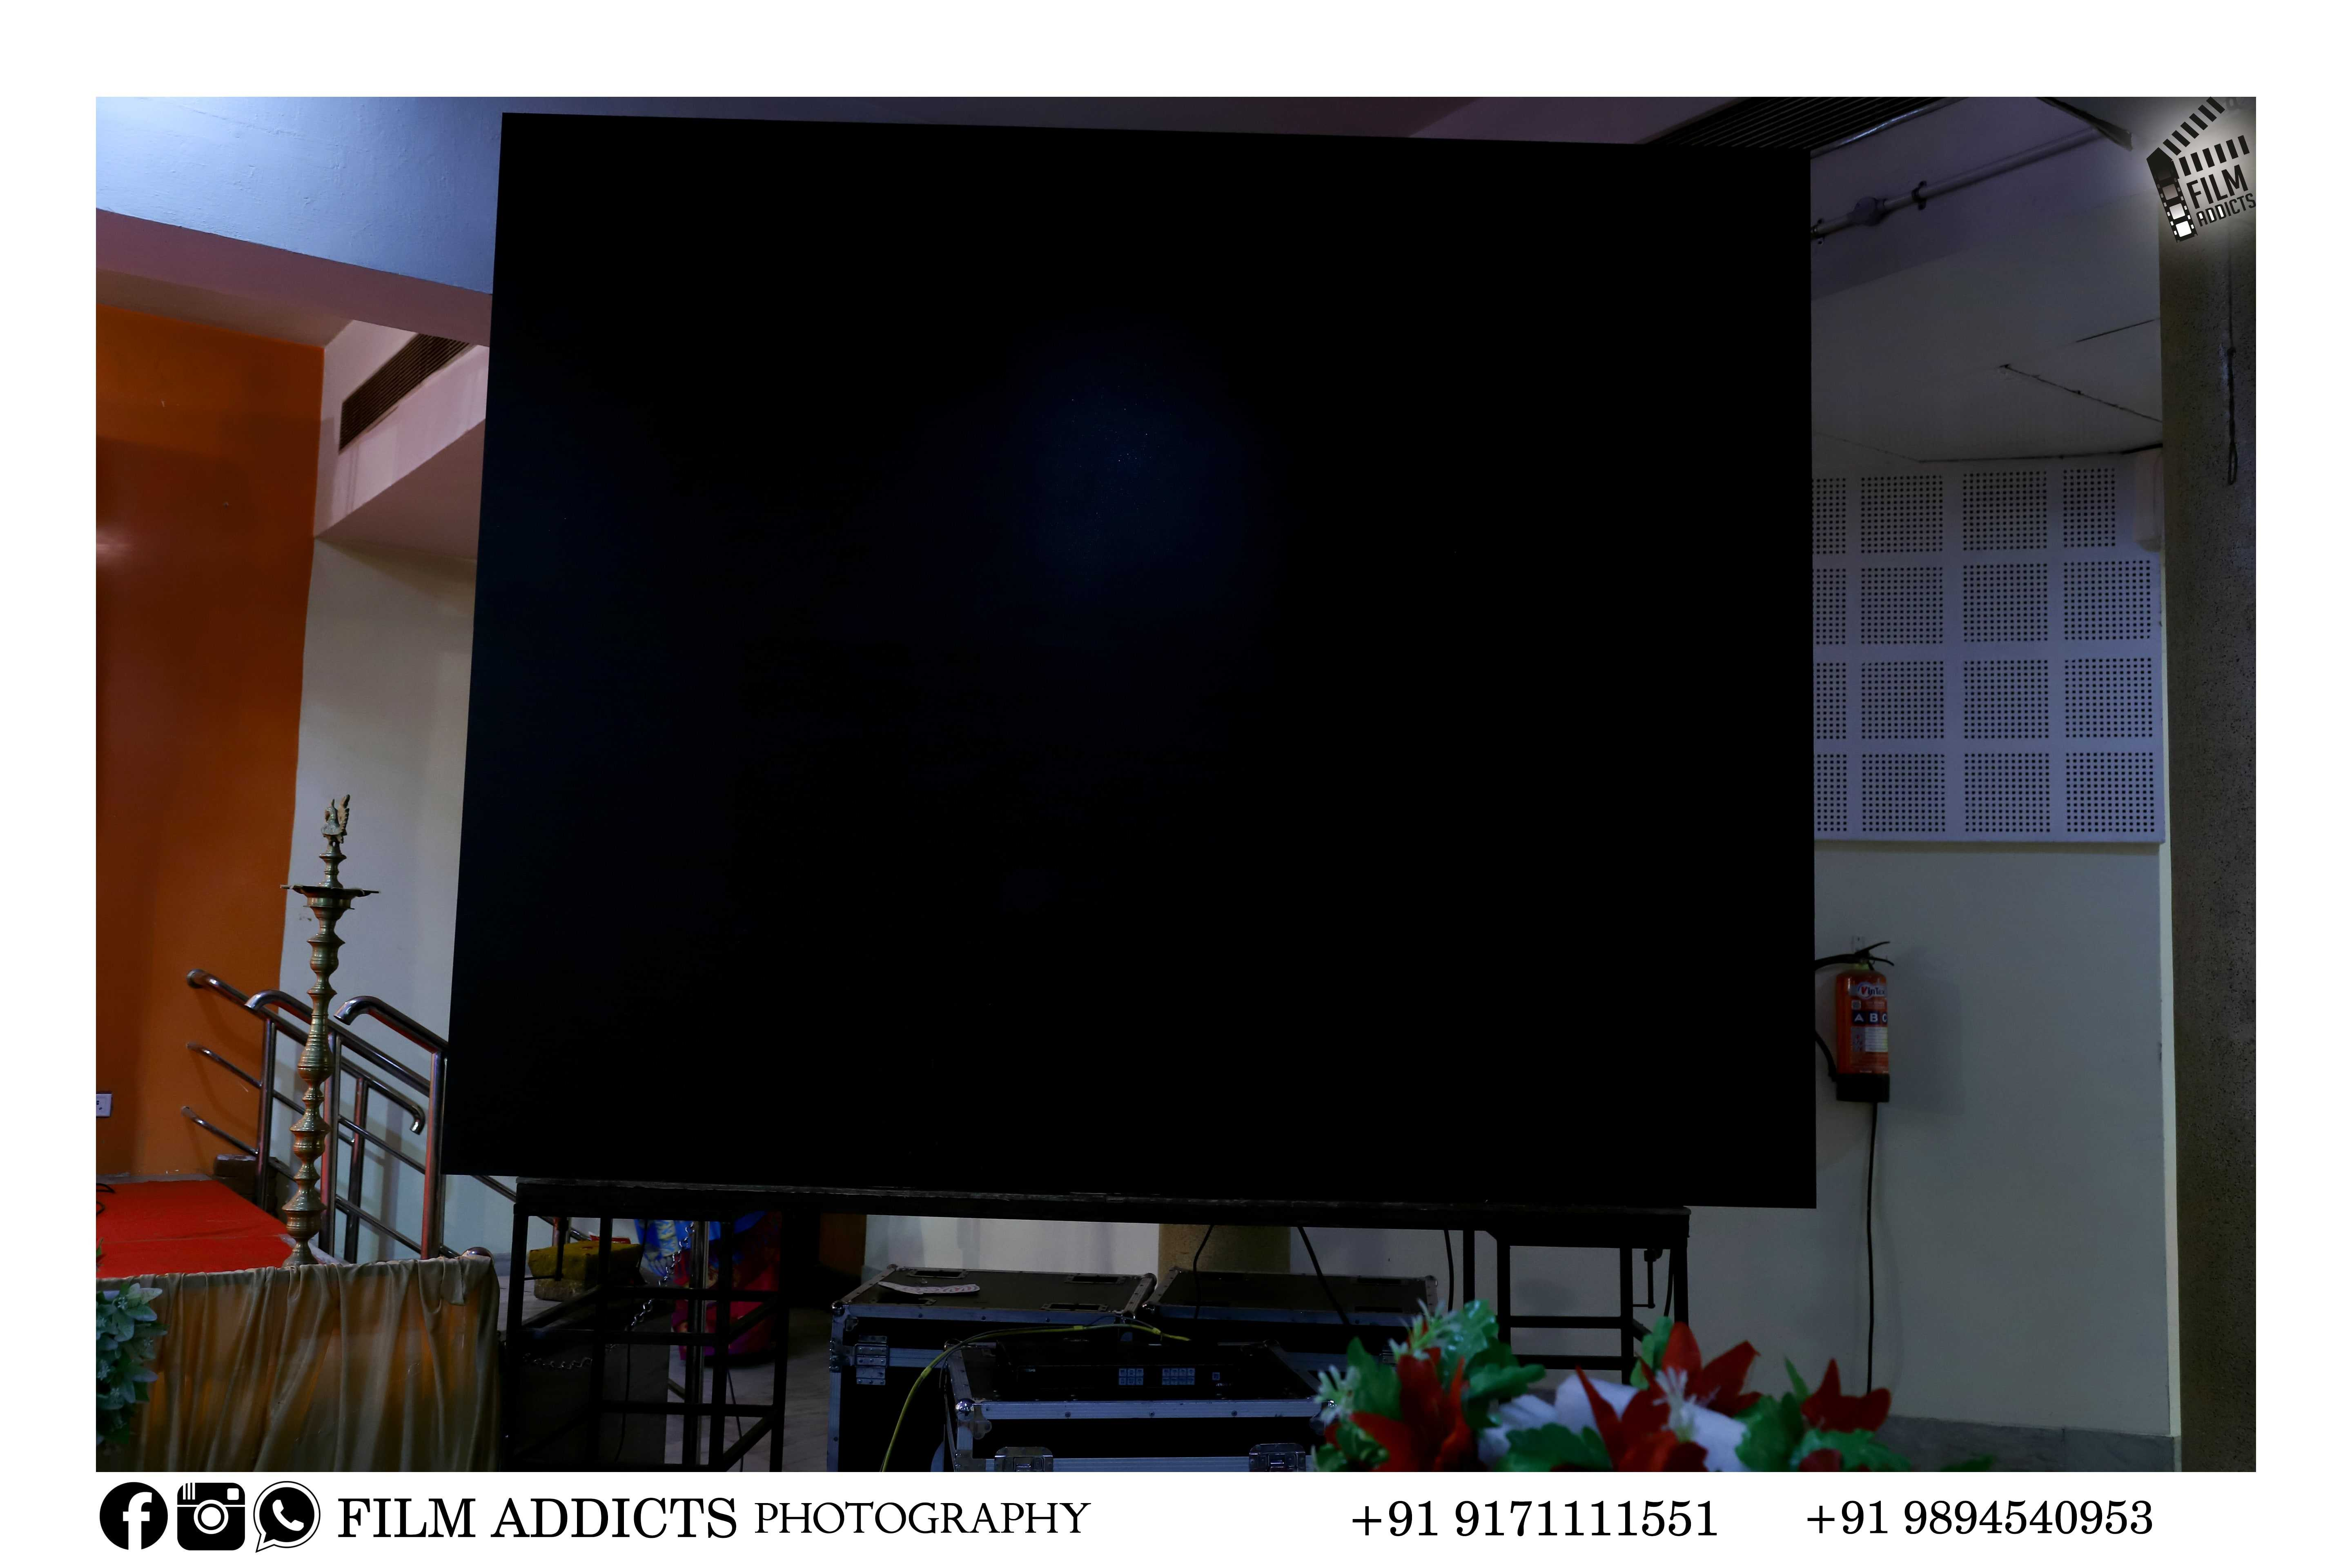 led wall on hire in madurai,led video wall in madurai,led display on hire in madurai,led screens on hire in madurai,led wall screen on hire in madurai,led dealers in madurai,led wall wholesalers in madurai,led wall distributors in madurai,led wall tv on hire in madurai,led wall rent in madurai,led video wall rent in madurai,led display rent in madurai,led screens rent in madurai,led wall screen rent in madurai,led wall tv rent in madurai,led wall rent wedding in madurai,led wall on hire wedding in madurai,led wall on hire events in madurai,led wall rent events in madurai,led wall rent school events in madurai,led wall college events in madurai,tv on hire in madurai,tv rent in madurai,best Wedding Photographers In Madurai,best Candid Photographers In Madurai,best Candid Photography In Madurai,best Wedding Photographers In Sivakasi,best Photographers In Madurai,best Wedding Videographers In Madurai,best Candid Video In Madurai,best Candid Wedding photographers in madurai,wedding photographers in madurai,best Wedding Photographers In tamilnadu,wedding-Photographer-Madurai, best-wedding-photography-in-madurai,candid-photographer-in-madurai, Candid Photographer Chennai, Wedding Photographer Chennai, Wedding Photographer Coimbatore, Wedding-Photographer-in-madurai,LED Wall in madurai,led wall in madurai,LED Wall in viruthunagar,led wall in viruthunagar,LED Wall in sivakasi,led wall in sivakasi,LED Wall in rajapalayam,led wall in rajapalayam,LED Wall in kovilpatti,led wall in kovilpatti,LED Wall in ramanathapuram,led wall in ramanathapuram,LED Wall in karaikudi,led wall in karaikudi,LED Wall in tirunelveli,led wall in tirunelveli,LED Wall in aruppukottai,led wall in aruppukottai,LED Wall in theni,led wall in theni,LED Wall in sivagangai,led wall in sivagangai,LED Wall in urilampatti,led wall in urilampatti,LED Wall in melur,led wall in melur,LED Wall in bodi,led wall in bodi,LED Wall in vadipatti,led wall in vadipatti,LED Wall in devakottai,led wall in devakottai,LED Wall in natham,led wall in natham,LED Wall in dindigul,led wall in dindigul,LED Wall in podukkottai,led wall in podukkottai,LED Wall in palani,led wall in palani,LED Wall in trichy,led wall in trichy,LED Wall in trichirapalli,led wall in trichirapalli,LED Wall in karur,led wall in karur,LED Wall in kombam,led wall in kombam LED Wall on hire in madurai,led wall on hire in madurai,LED Wall on hire in viruthunagar,led wall on hire in viruthunagar,LED Wall on hire in sivakasi,led wall on hire in sivakasi,LED Wall on hire in rajapalayam,led wall on hire in rajapalayam,LED Wall on hire in kovilpatti,led wall on hire in kovilpatti,LED Wall on hire in ramanathapuram,led wall on hire in ramanathapuram,LED Wall on hire in karaikudi,led wall on hire in karaikudi,LED Wall on hire in tirunelveli,led wall on hire in tirunelveli,LED Wall on hire in aruppukottai,led wall on hire in aruppukottai,LED Wall on hire in theni,led wall on hire in theni,LED Wall on hire in sivagangai,led wall on hire in sivagangai,LED Wall on hire in urilampatti,led wall on hire in urilampatti,LED Wall on hire in melur,led wall on hire in melur,LED Wall on hire in bodi,led wall on hire in bodi,LED Wall on hire in vadipatti,led wall on hire in vadipatti,LED Wall on hire in devakottai,led wall on hire in devakottai,LED Wall on hire in natham,led wall on hire in natham,LED Wall on hire in dfordigul,led wall on hire in dfordigul,LED Wall on hire in podukkottai,led wall on hire in podukkottai,LED Wall on hire in palani,led wall on hire in palani,LED Wall on hire in trichy,led wall on hire in trichy,LED Wall on hire in trichirapalli,led wall on hire in trichirapalli,LED Wall on hire in karur,led wall on hire in karur,LED Wall on hire in kombam,led wall on hire in kombam LED Wall rental  for madurai,led wall rental in madurai,LED Wall rental for viruthunagar,led wall rental for viruthunagar,LED Wall rental for sivakasi,led wall rental for sivakasi,LED Wall rental for rajapalayam,led wall rental for rajapalayam,LED Wall rental for kovilpatti,led wall rental for kovilpatti,LED Wall rental for ramanathapuram,led wall rental for ramanathapuram,LED Wall rental for karaikudi,led wall rental for karaikudi,LED Wall rental for tirunelveli,led wall rental for tirunelveli,LED Wall rental for aruppukottai,led wall rental for aruppukottai,LED Wall rental for theni,led wall rental for theni,LED Wall rental for sivagangai,led wall rental for sivagangai,LED Wall rental for urilampatti,led wall rental for urilampatti,LED Wall rental for melur,led wall rental for melur,LED Wall rental for bodi,led wall rental for bodi,LED Wall rental for vadipatti,led wall rental for vadipatti,LED Wall rental for devakottai,led wall rental for devakottai,LED Wall rental for natham,led wall rental for natham,LED Wall rental for dfordigul,led wall rental for dfordigul,LED Wall rental for podukkottai,led wall rental for podukkottai,LED Wall rental for palani,led wall rental for palani,LED Wall rental for trichy,led wall rental for trichy,LED Wall rental for trichirapalli,led wall rental for trichirapalli,LED Wall rental for karur,led wall rental for karur,LED Wall rental for kombam,led wall rental for kombam